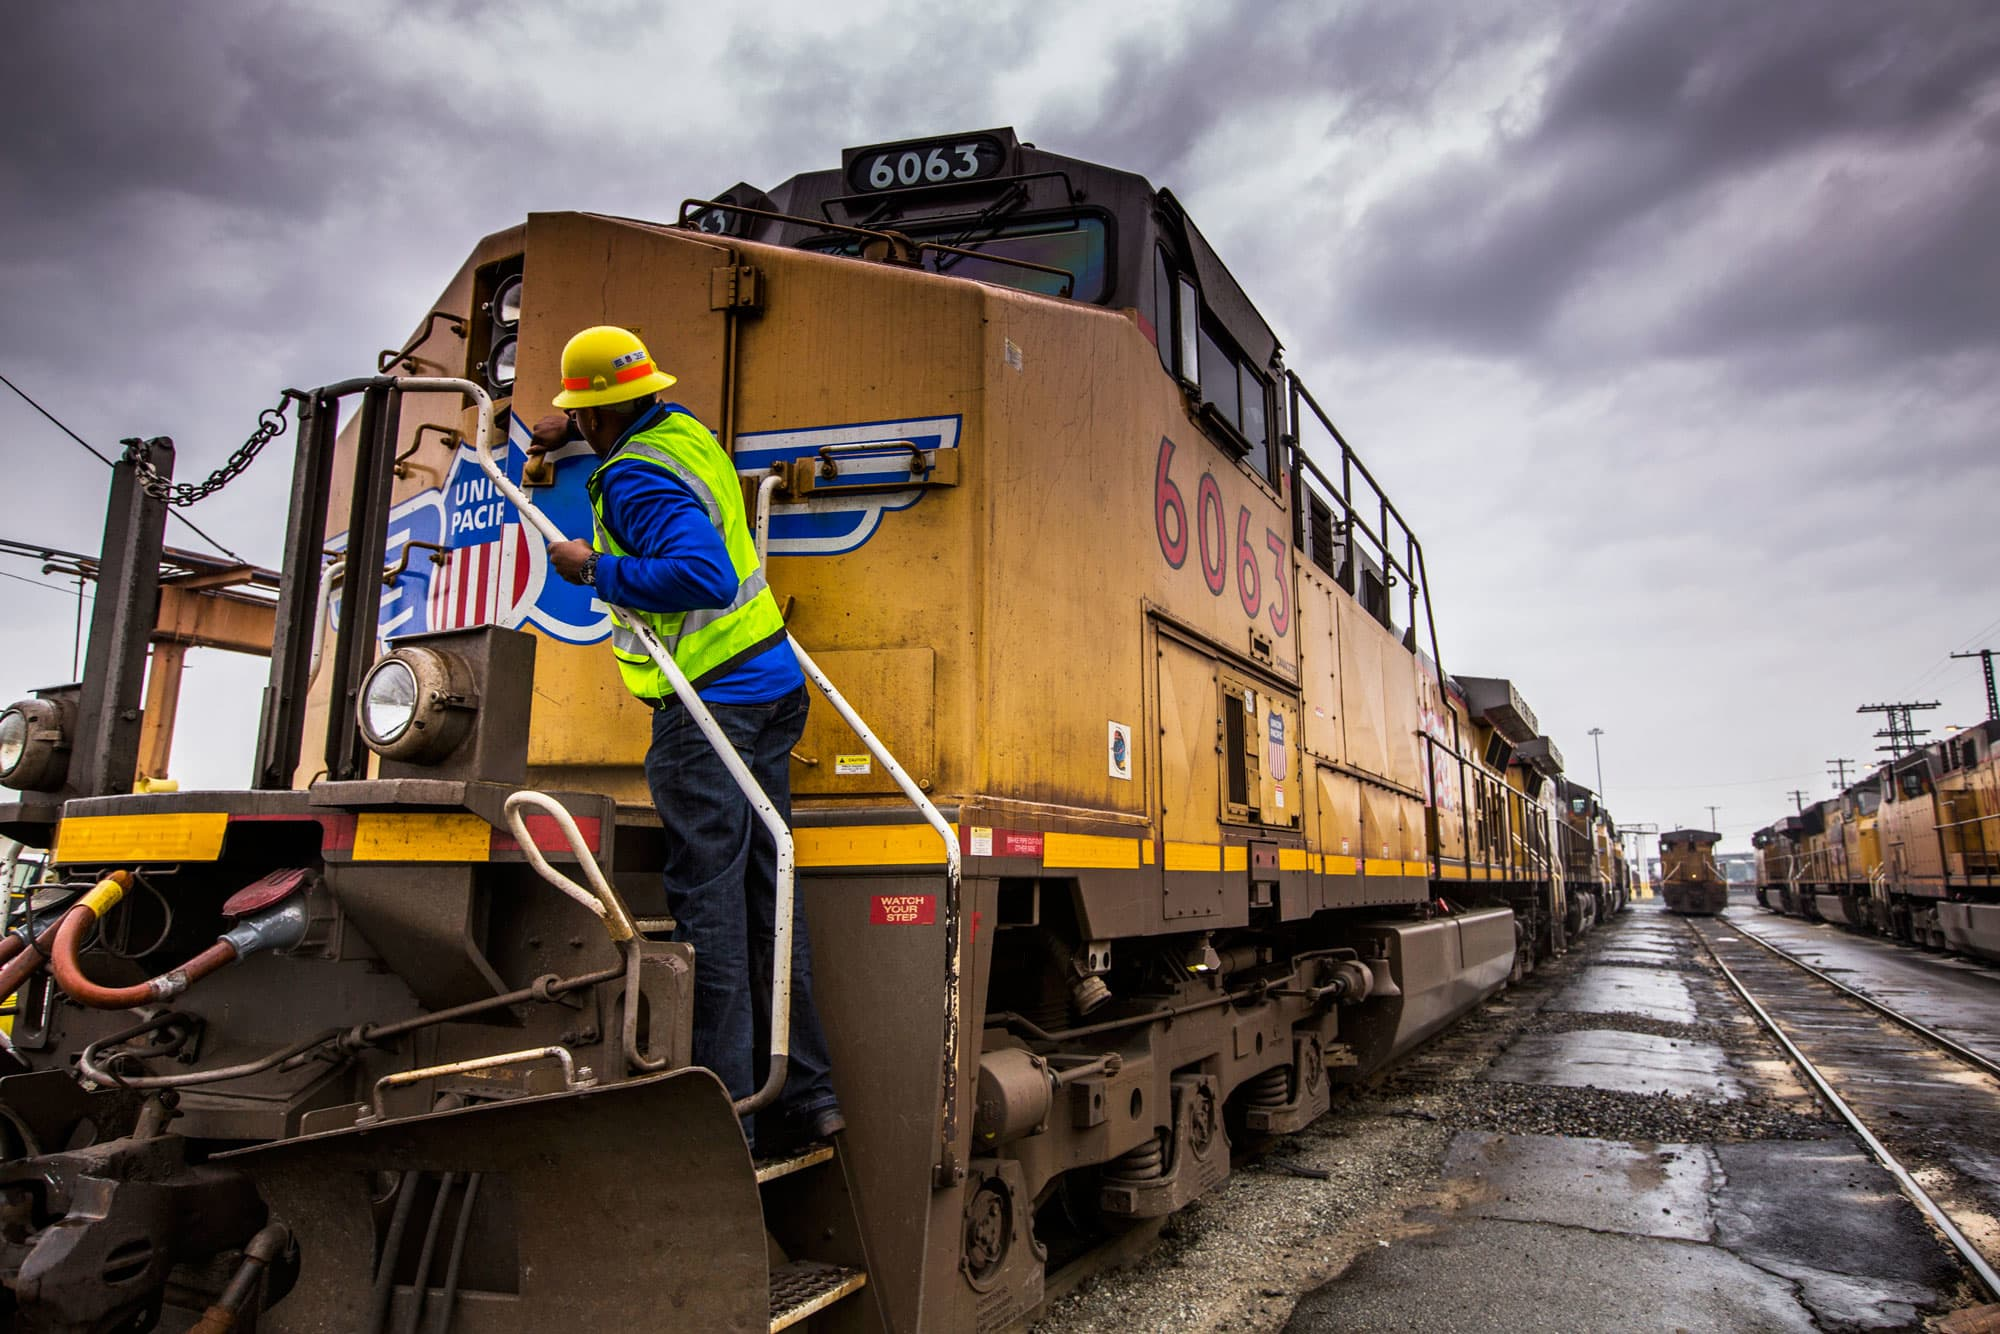 A Union Pacific employee closes the entry door on a rail car at the company's facility at the Port of Oakland in Oakland, California.